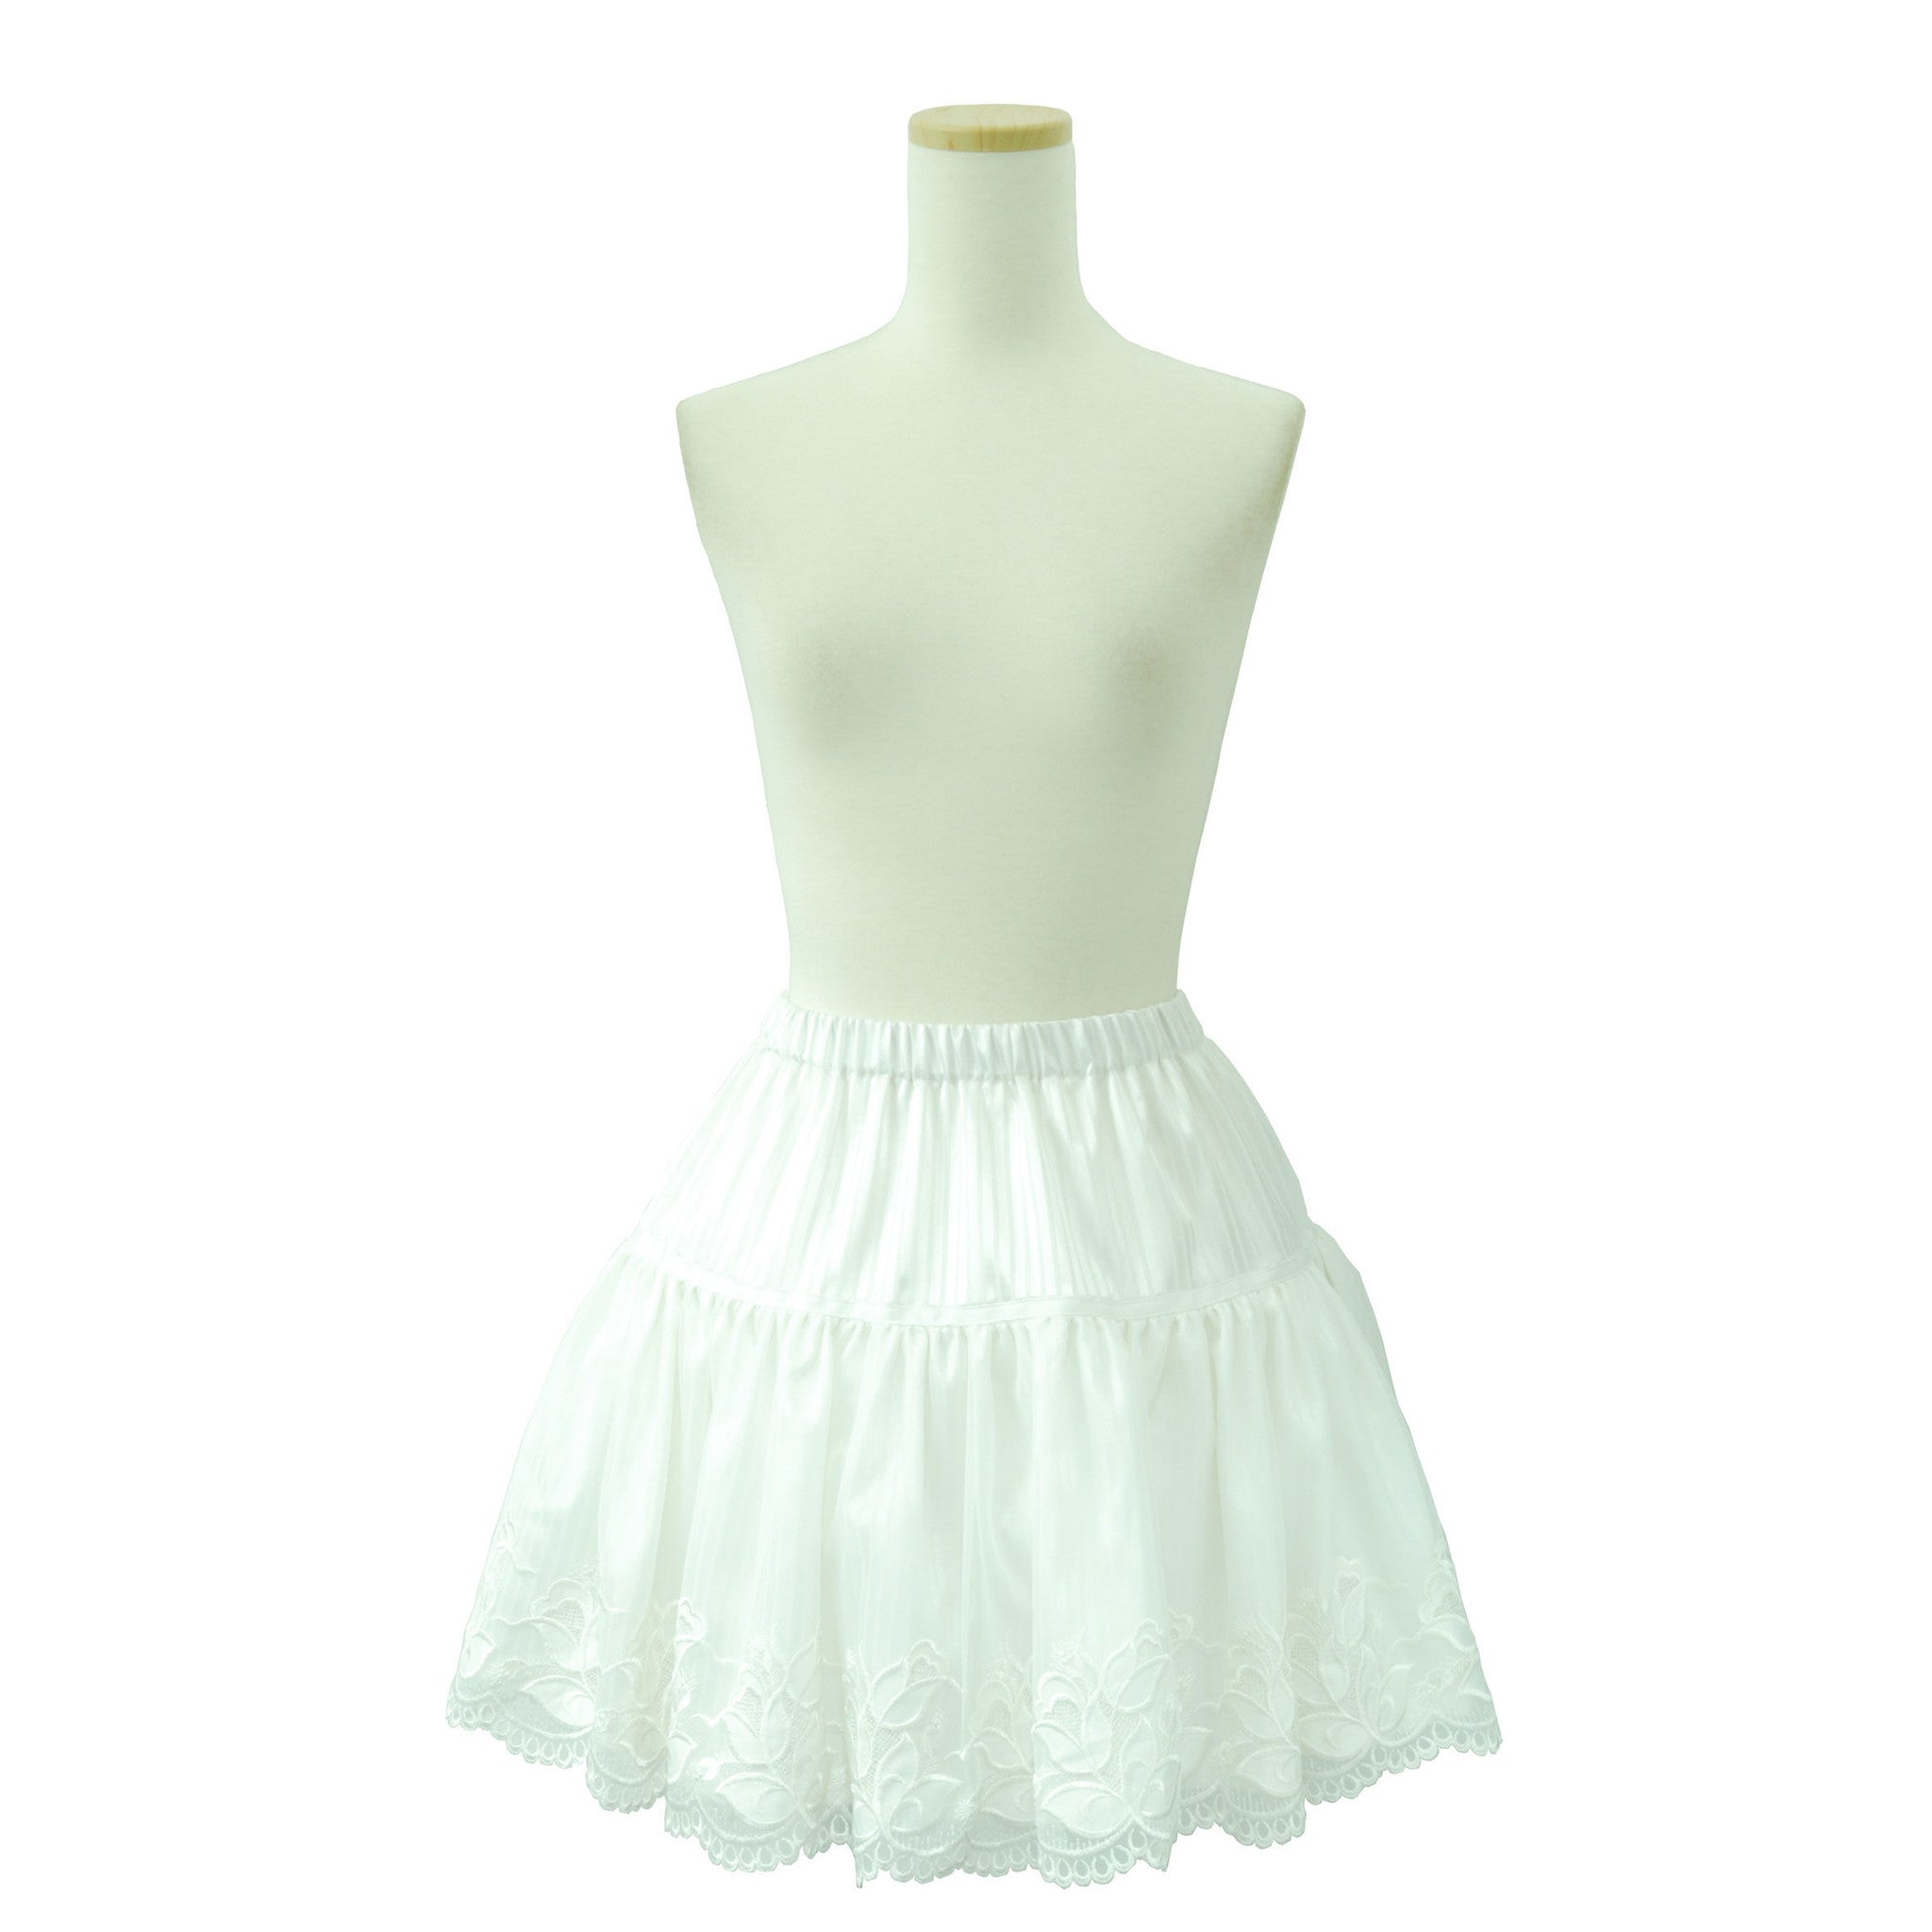 "Sheglit ""Sharlotte Lace Skirt(white)"""